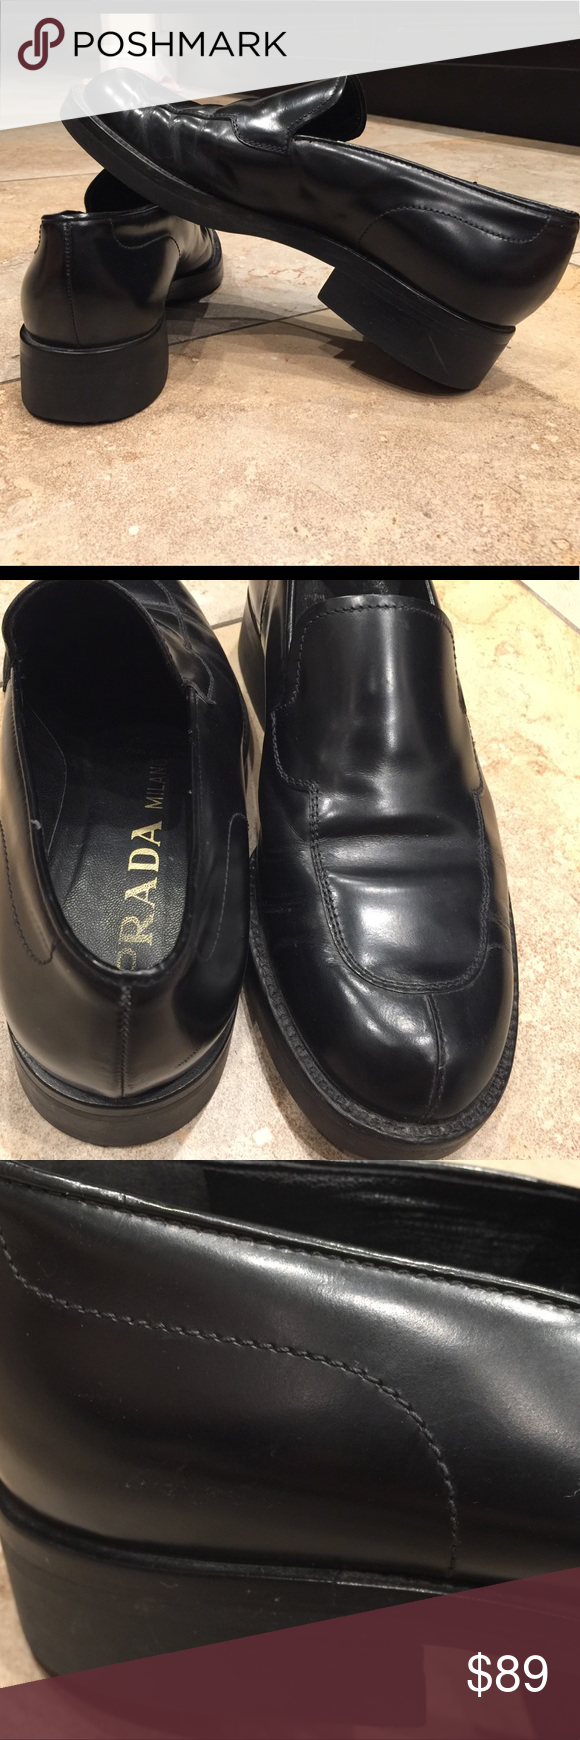 a96cef80579 PRADA Loafer Women s shoe size 6 Used but perfect condition